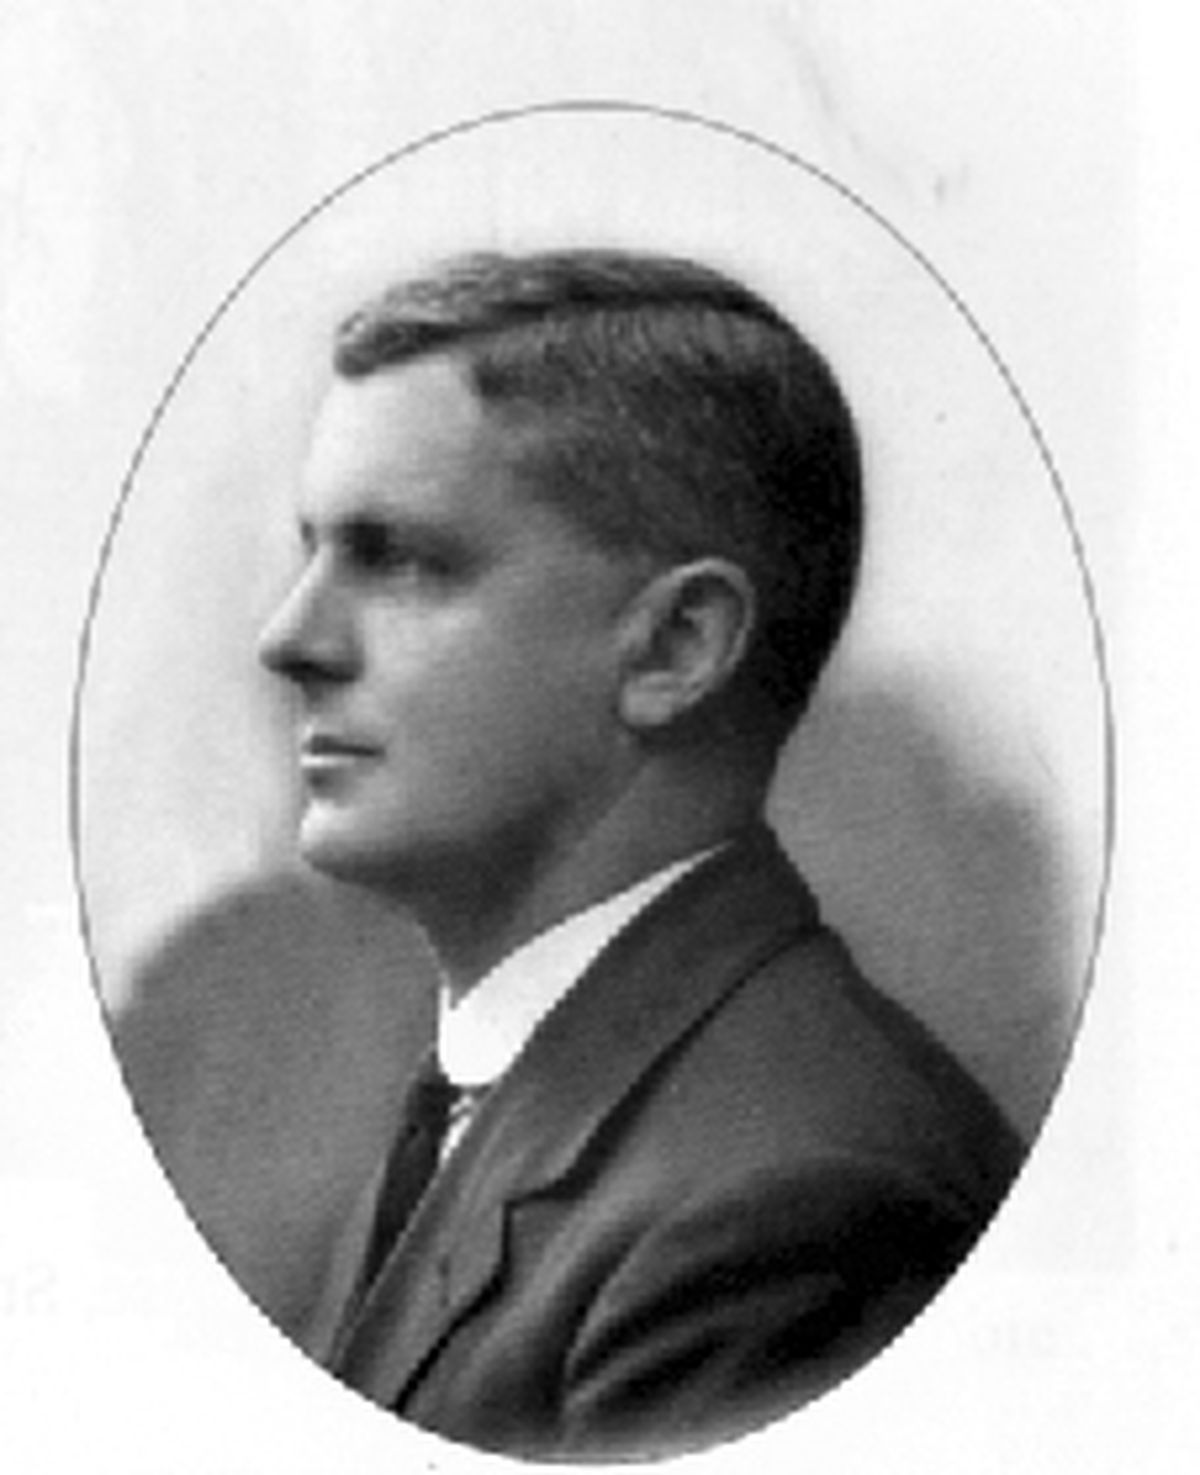 Richard Pedley Ward, whose marriage to Gertrude James joined two prominent farming families in the Lilleshall and Donnington areas.